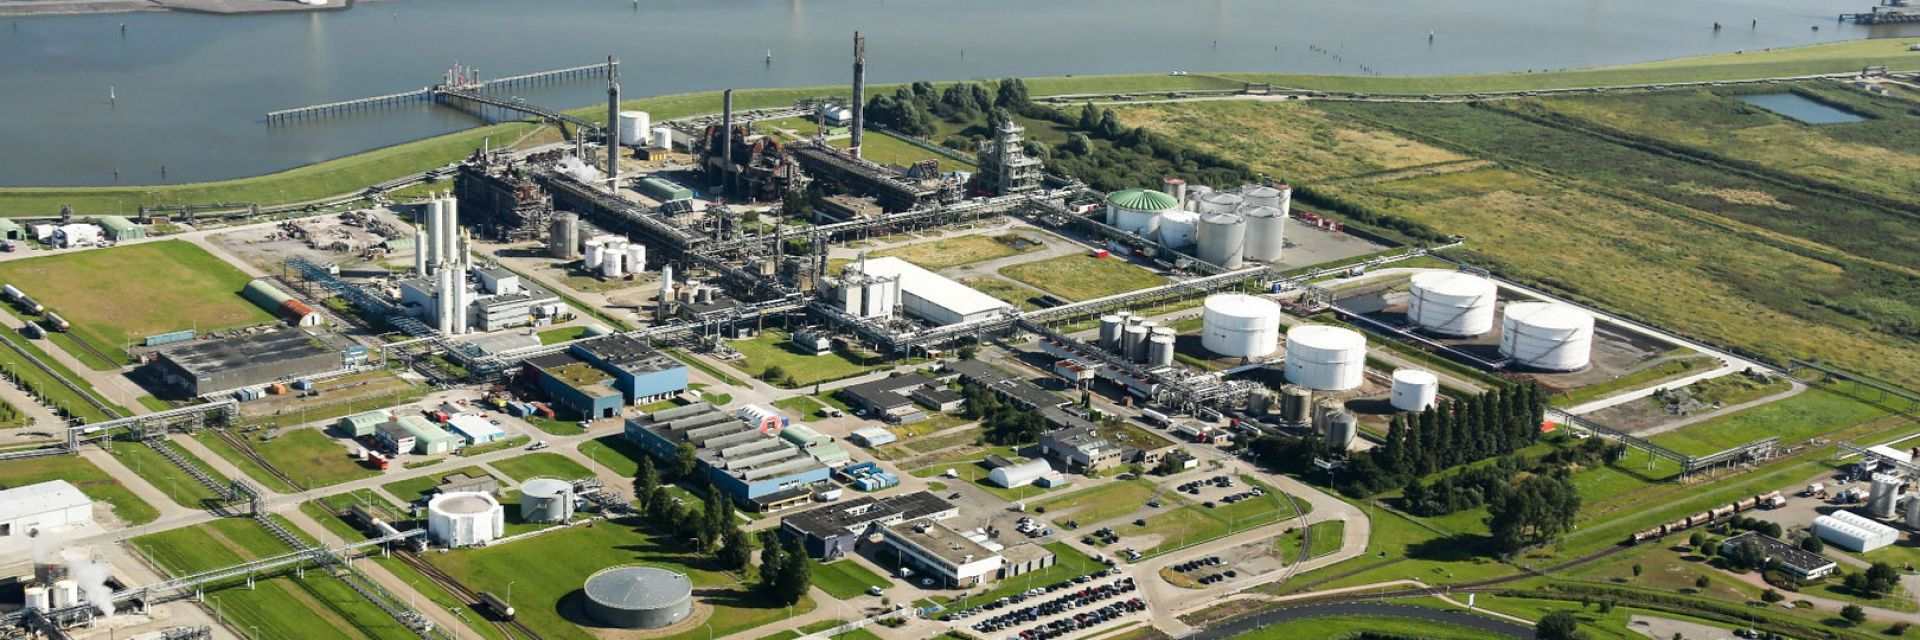 Chemport Industry Campus for testing grounds in Delfzijl